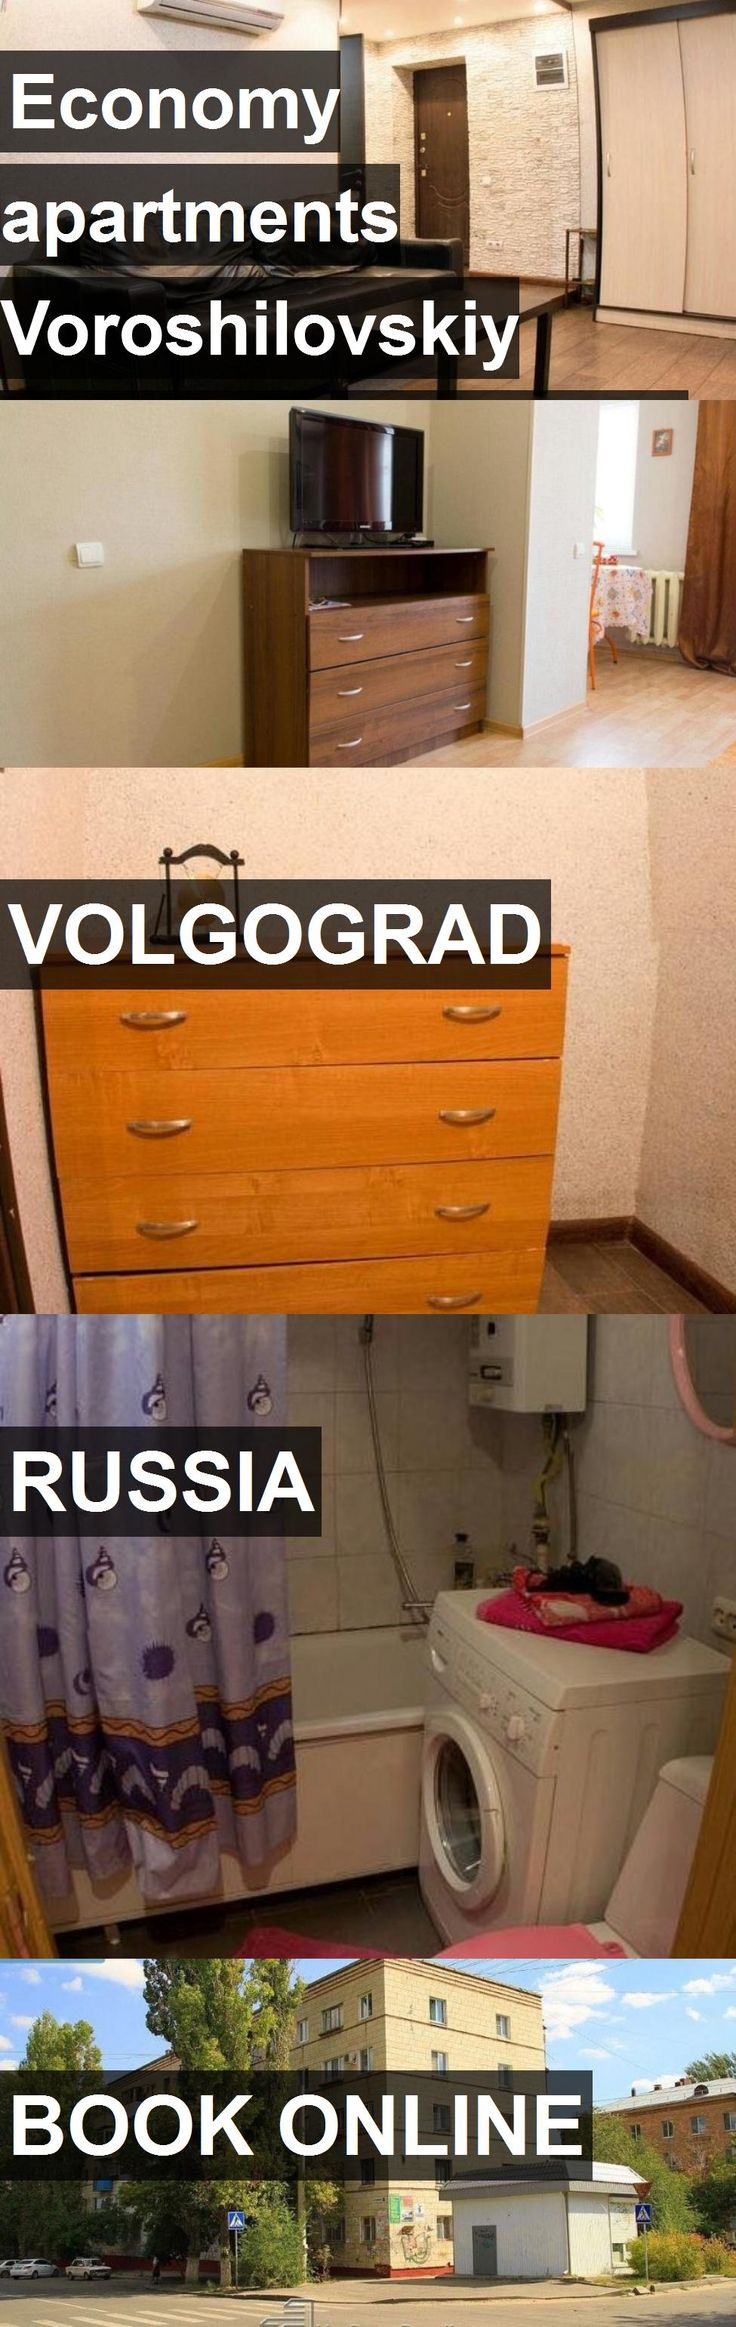 Economy apartments Voroshilovskiy District - Volgograd in Volgograd, Russia. For more information, photos, reviews and best prices please follow the link. #Russia #Volgograd #travel #vacation #apartment